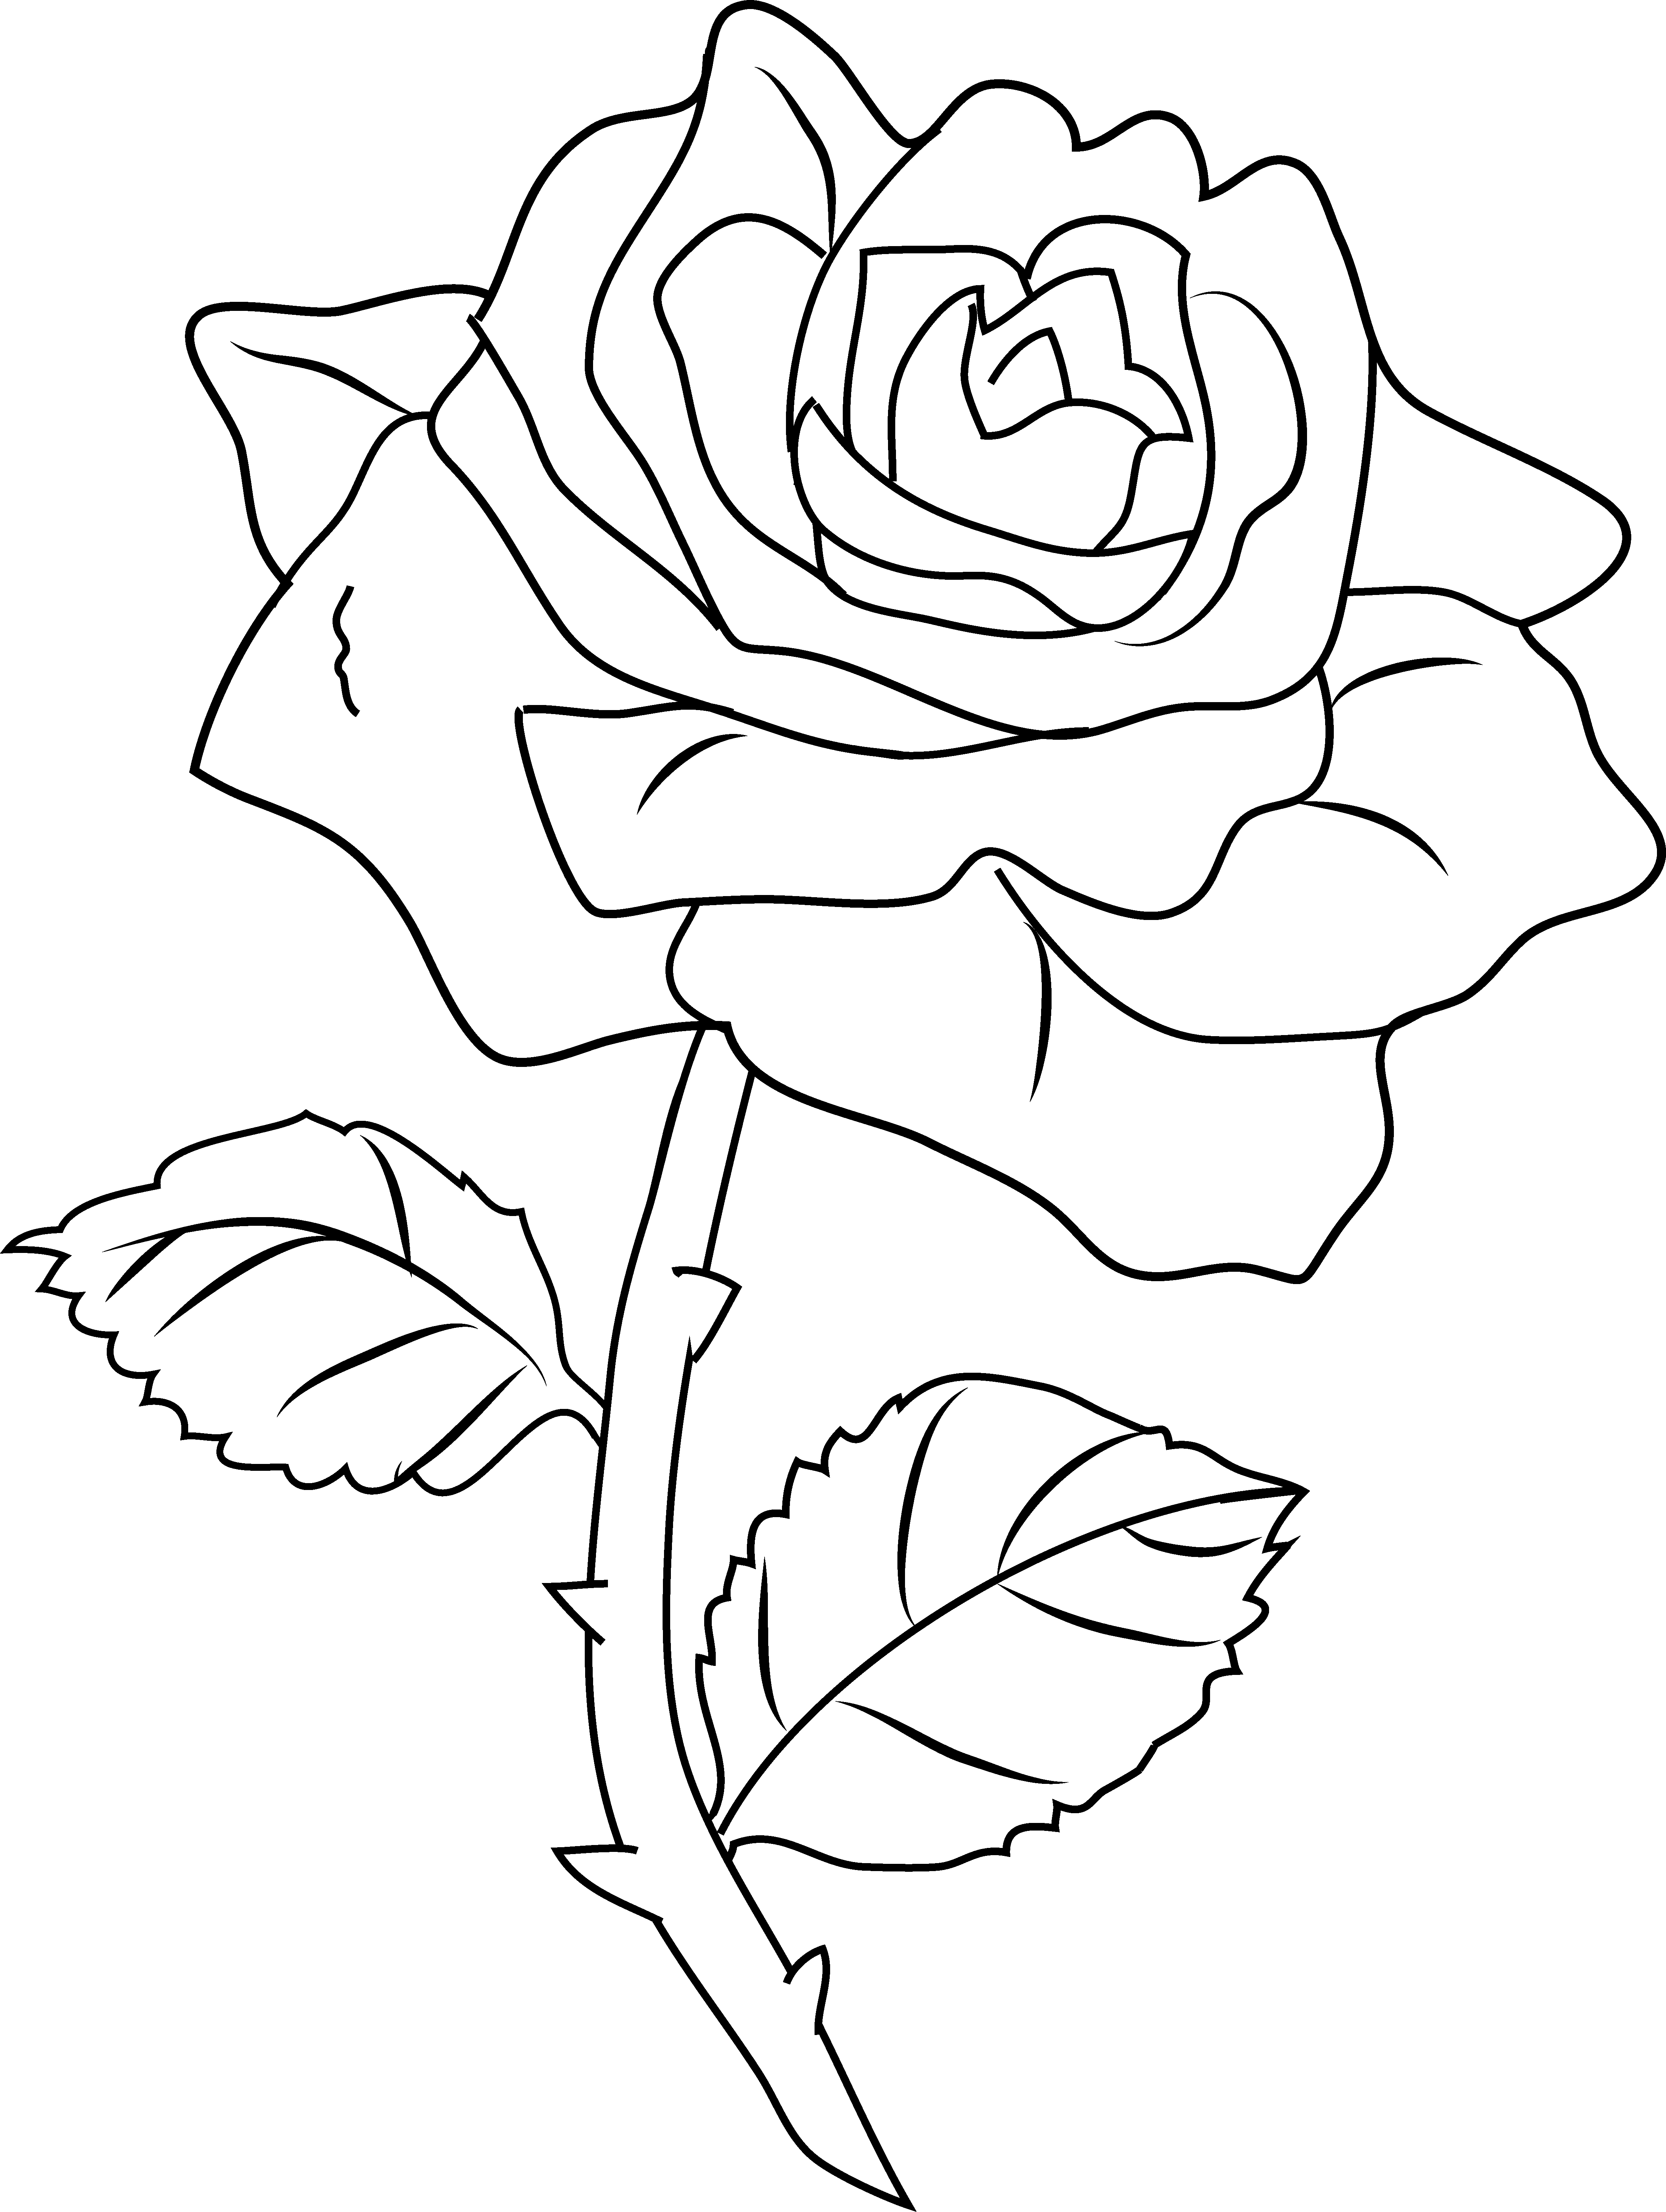 coloring pic of flower flower outline coloring page free stock photo public flower of coloring pic